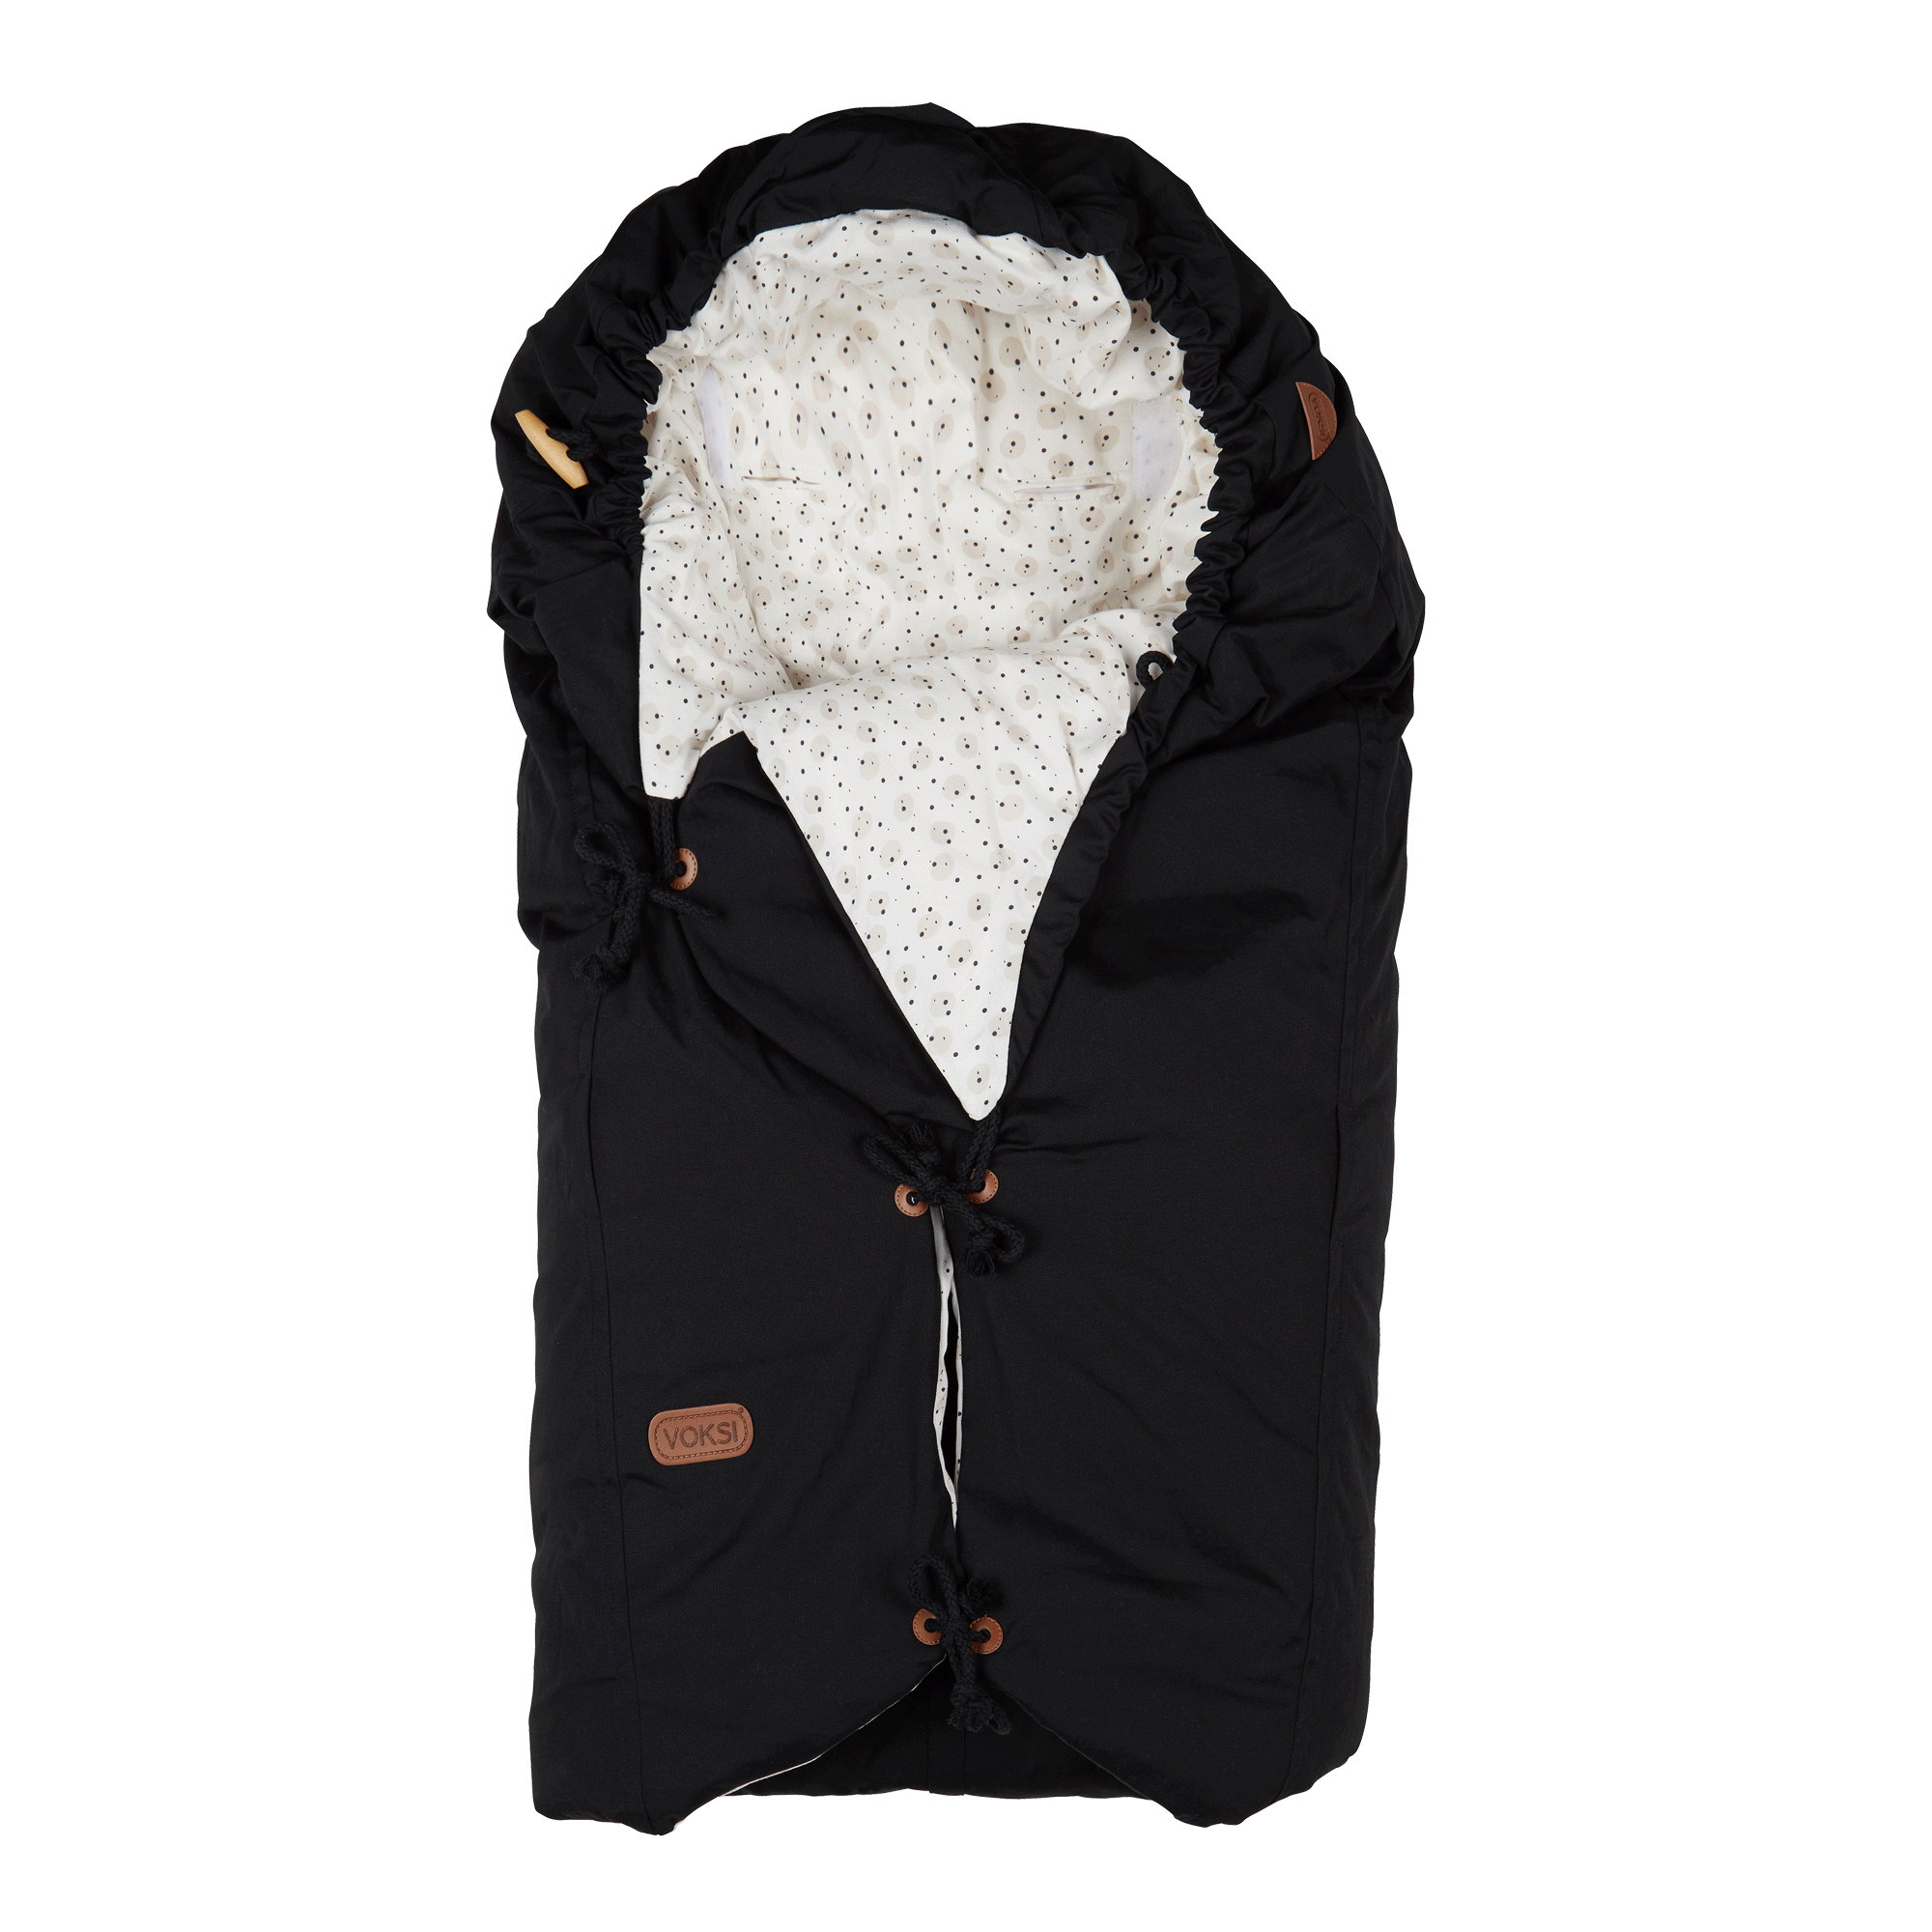 Voksi_Classic+_Sleeping_bag_Moon-Black